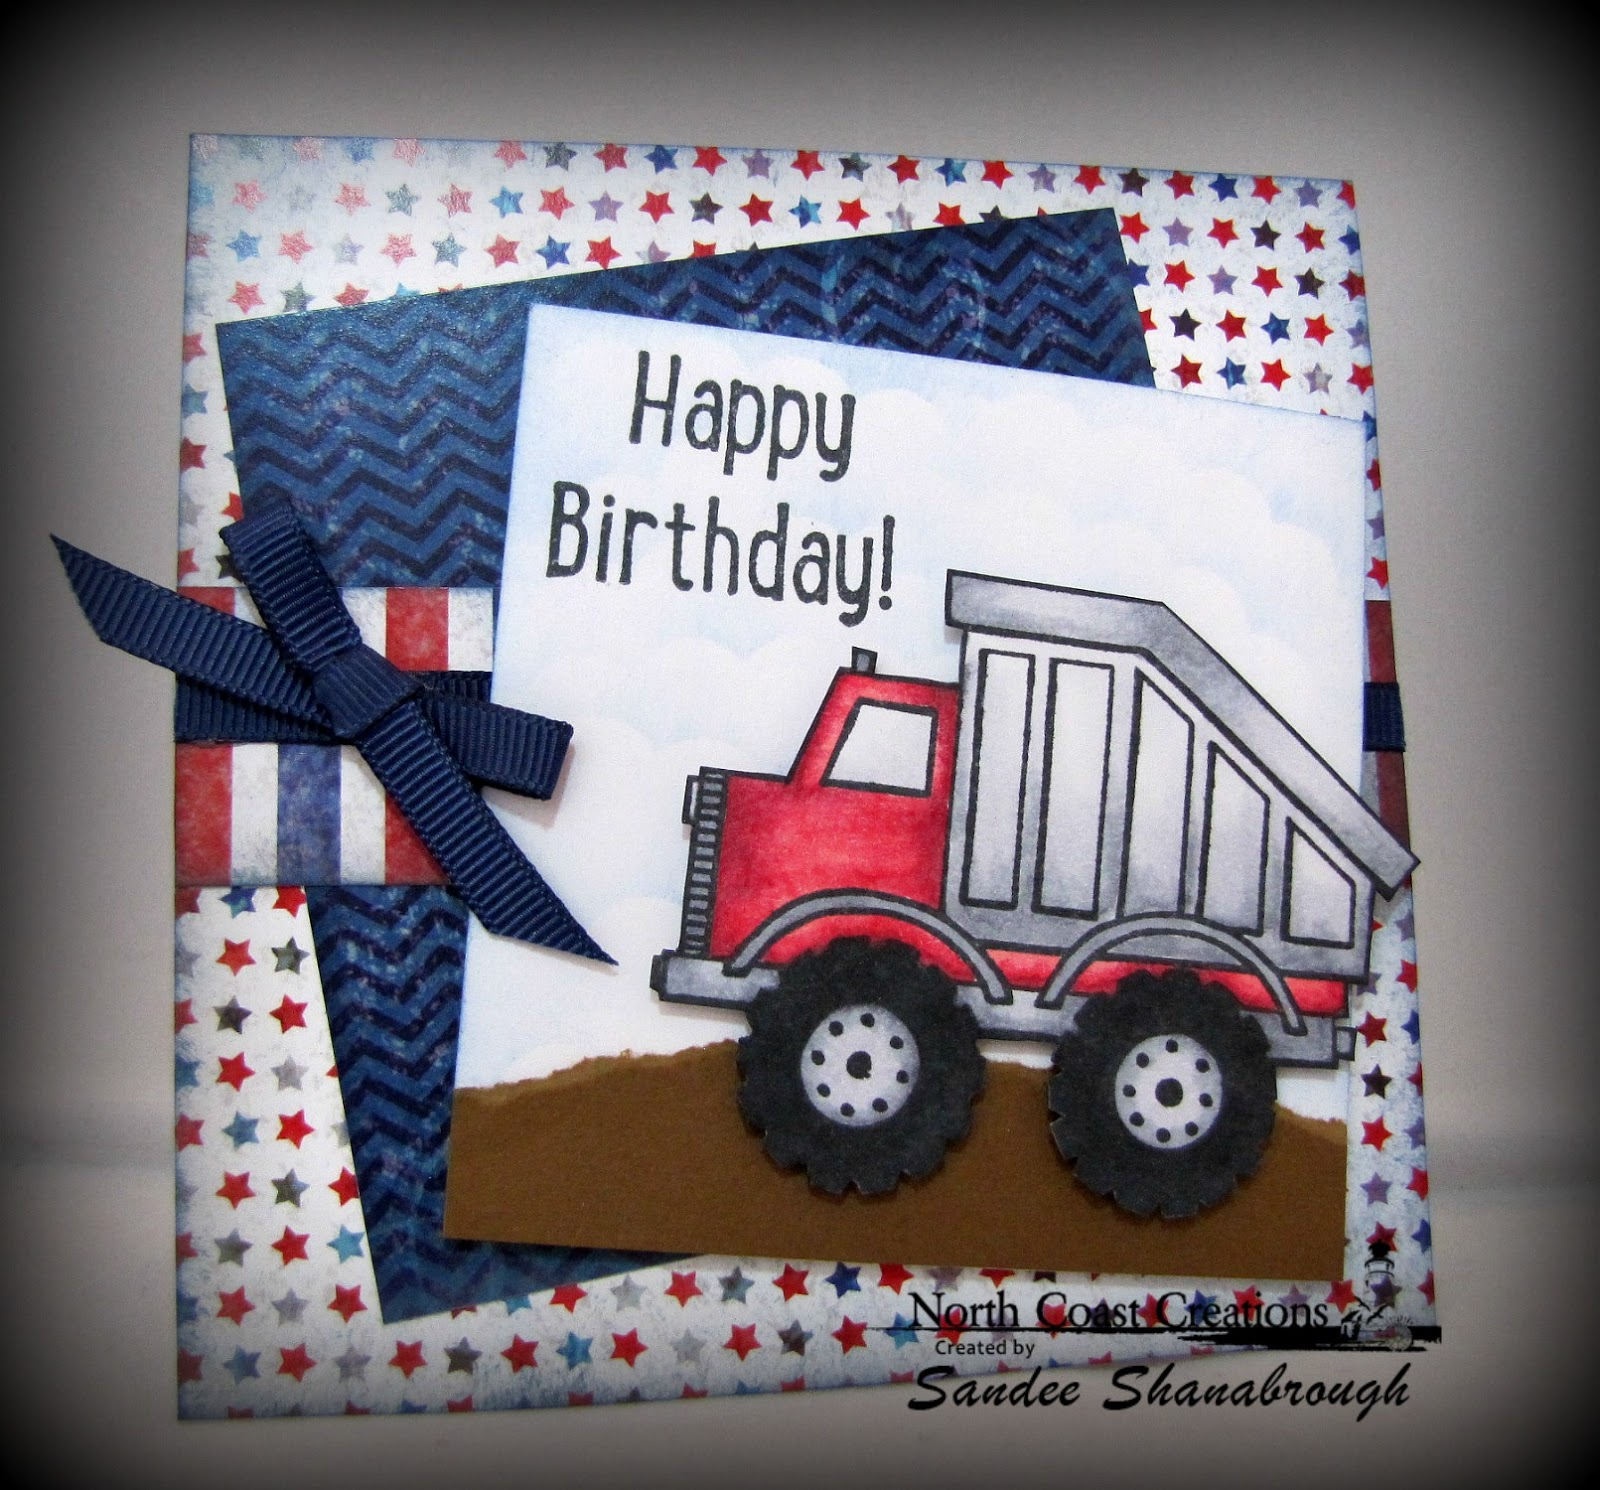 Stamps - North Coast Creations Dump Truck Birthday, Our Daily Bread Designs Patriotic Paper Collection